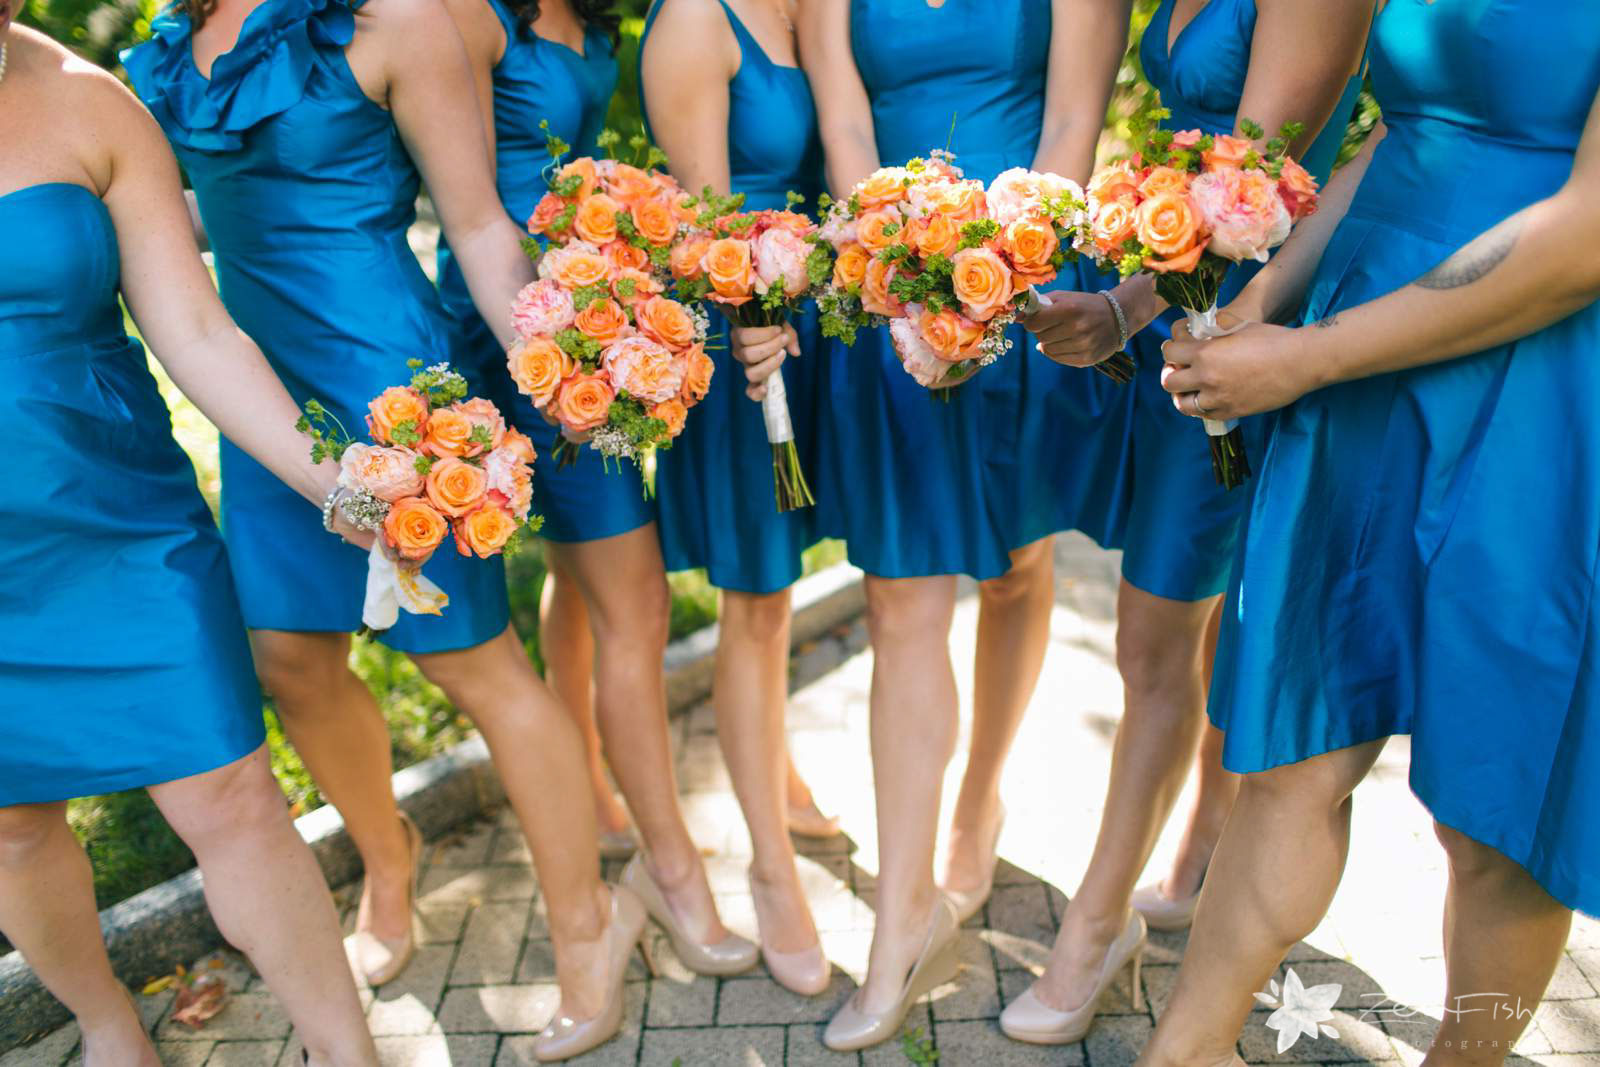 Detail of bridesmaid holding pink and orange bouquets, different styles blue bridesmaids dresses.